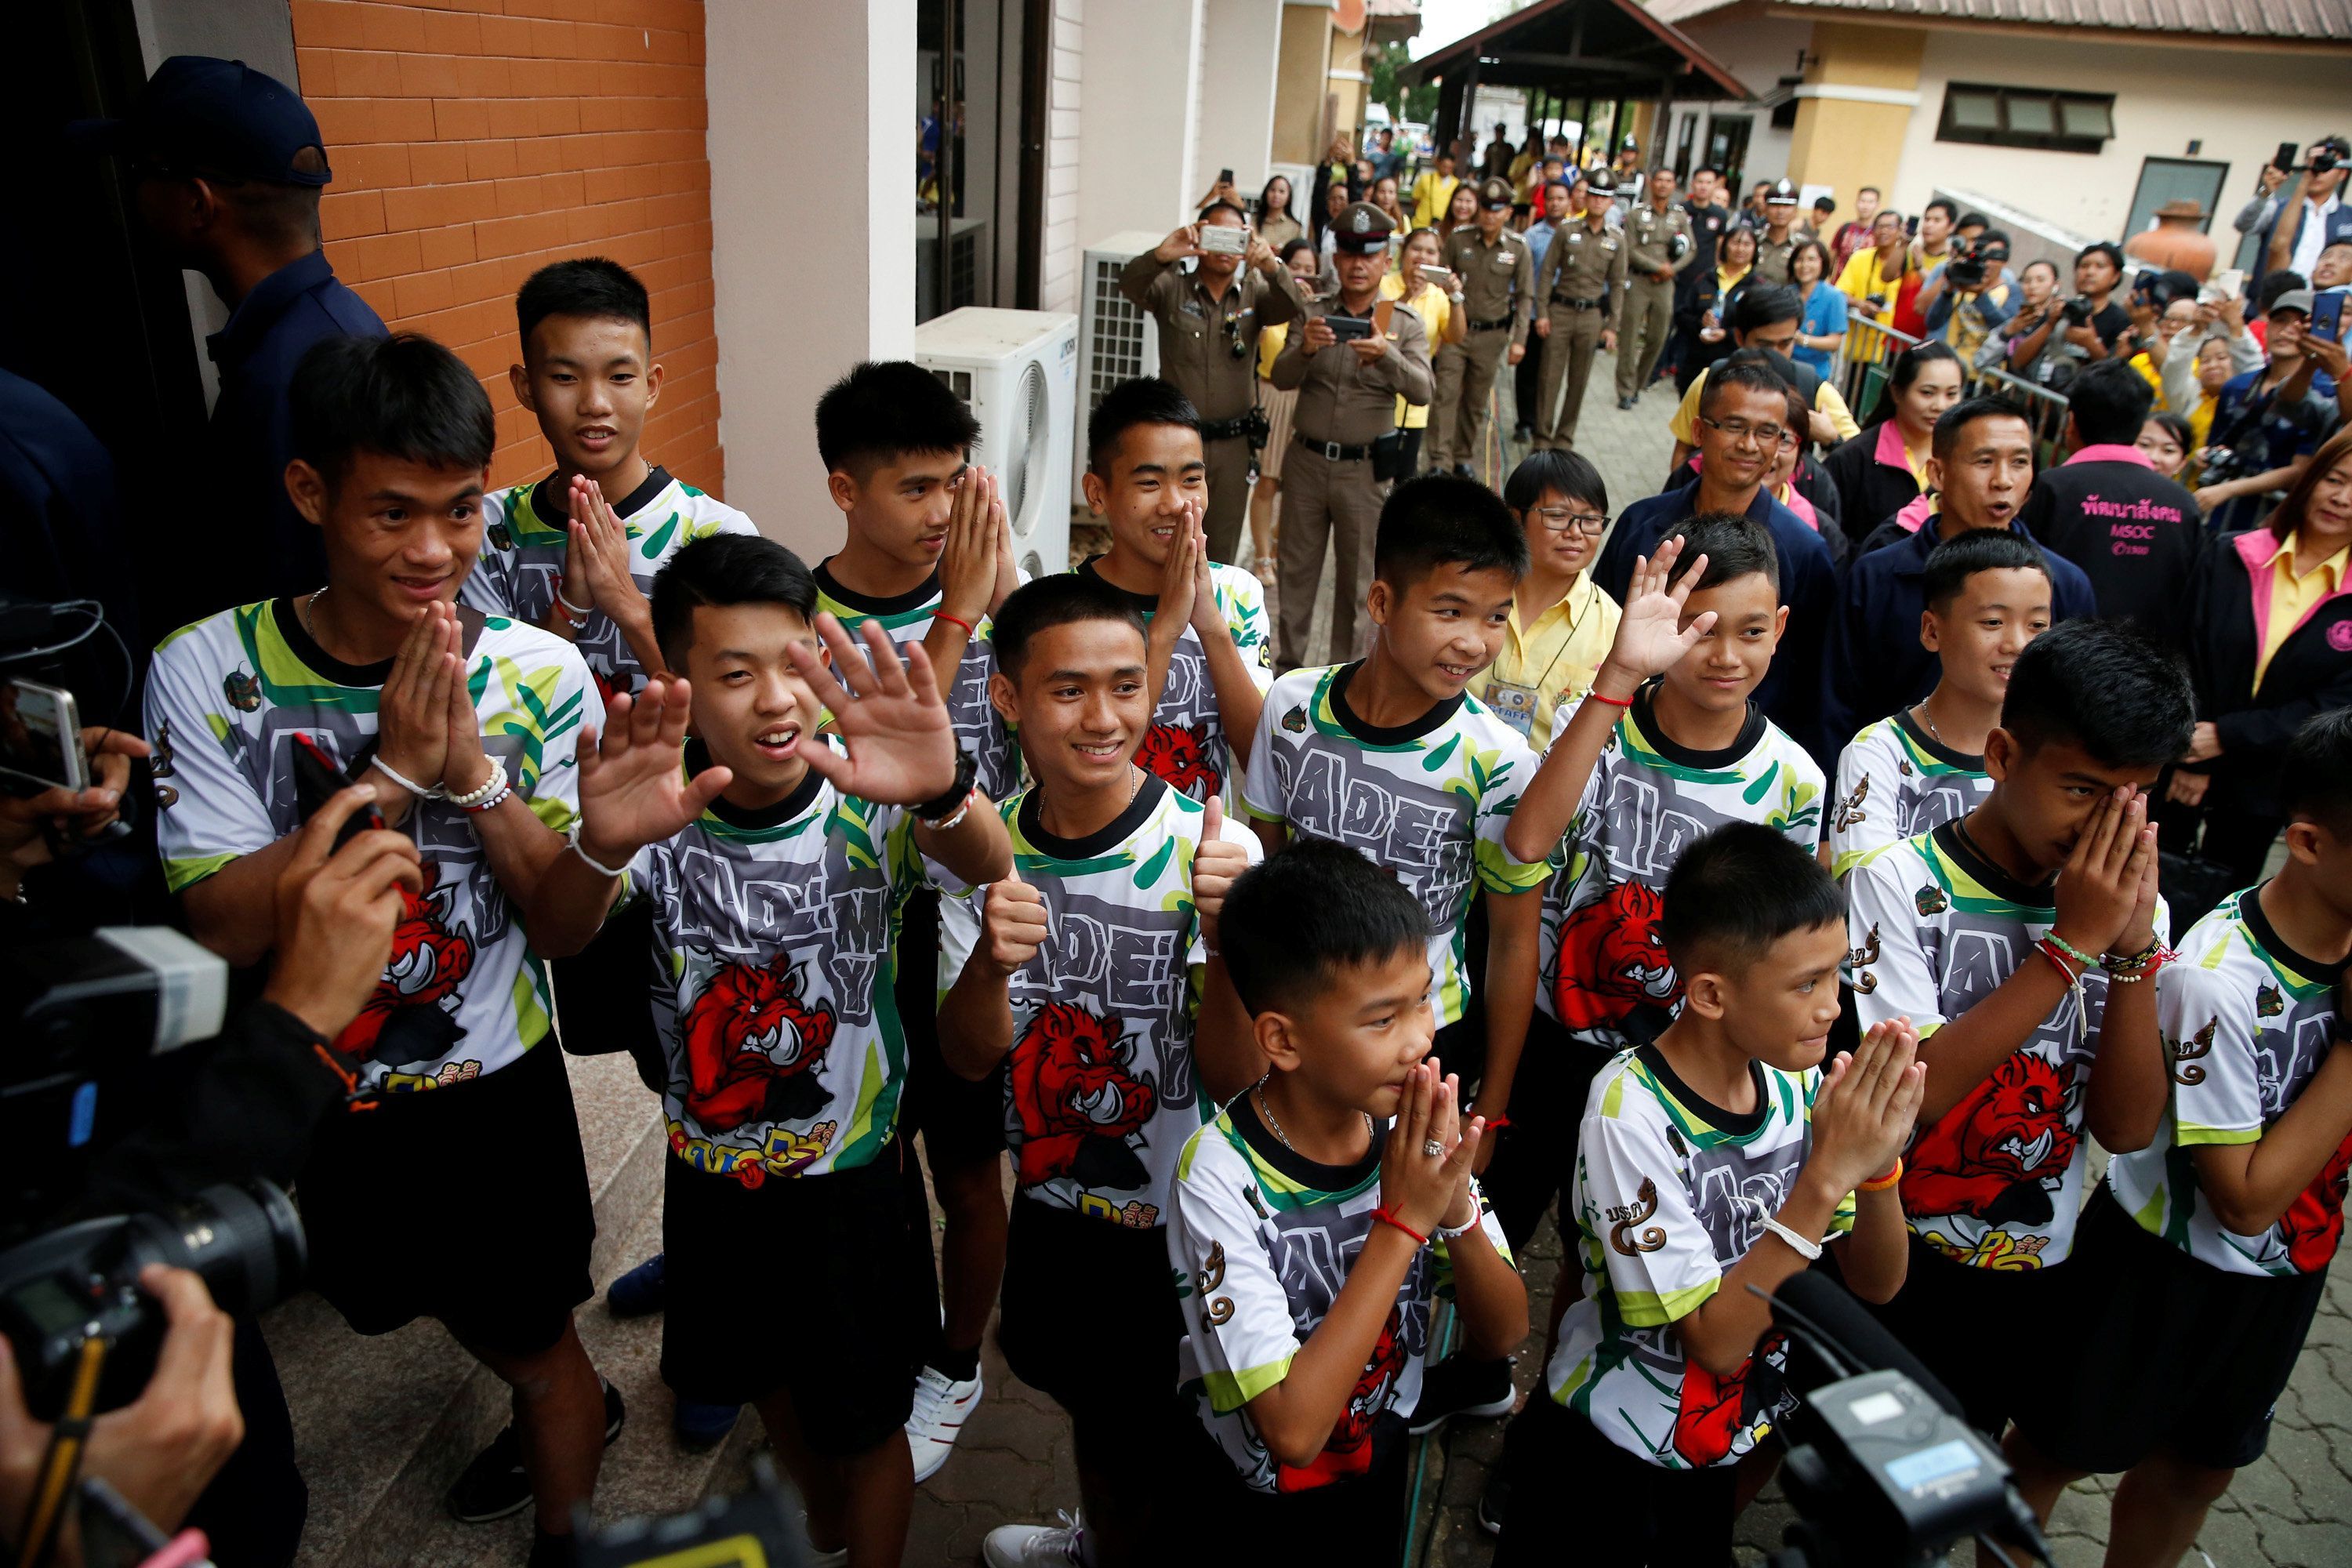 Thai Cave Boys Describe Their Joy As Divers Reached Them After 18-Day